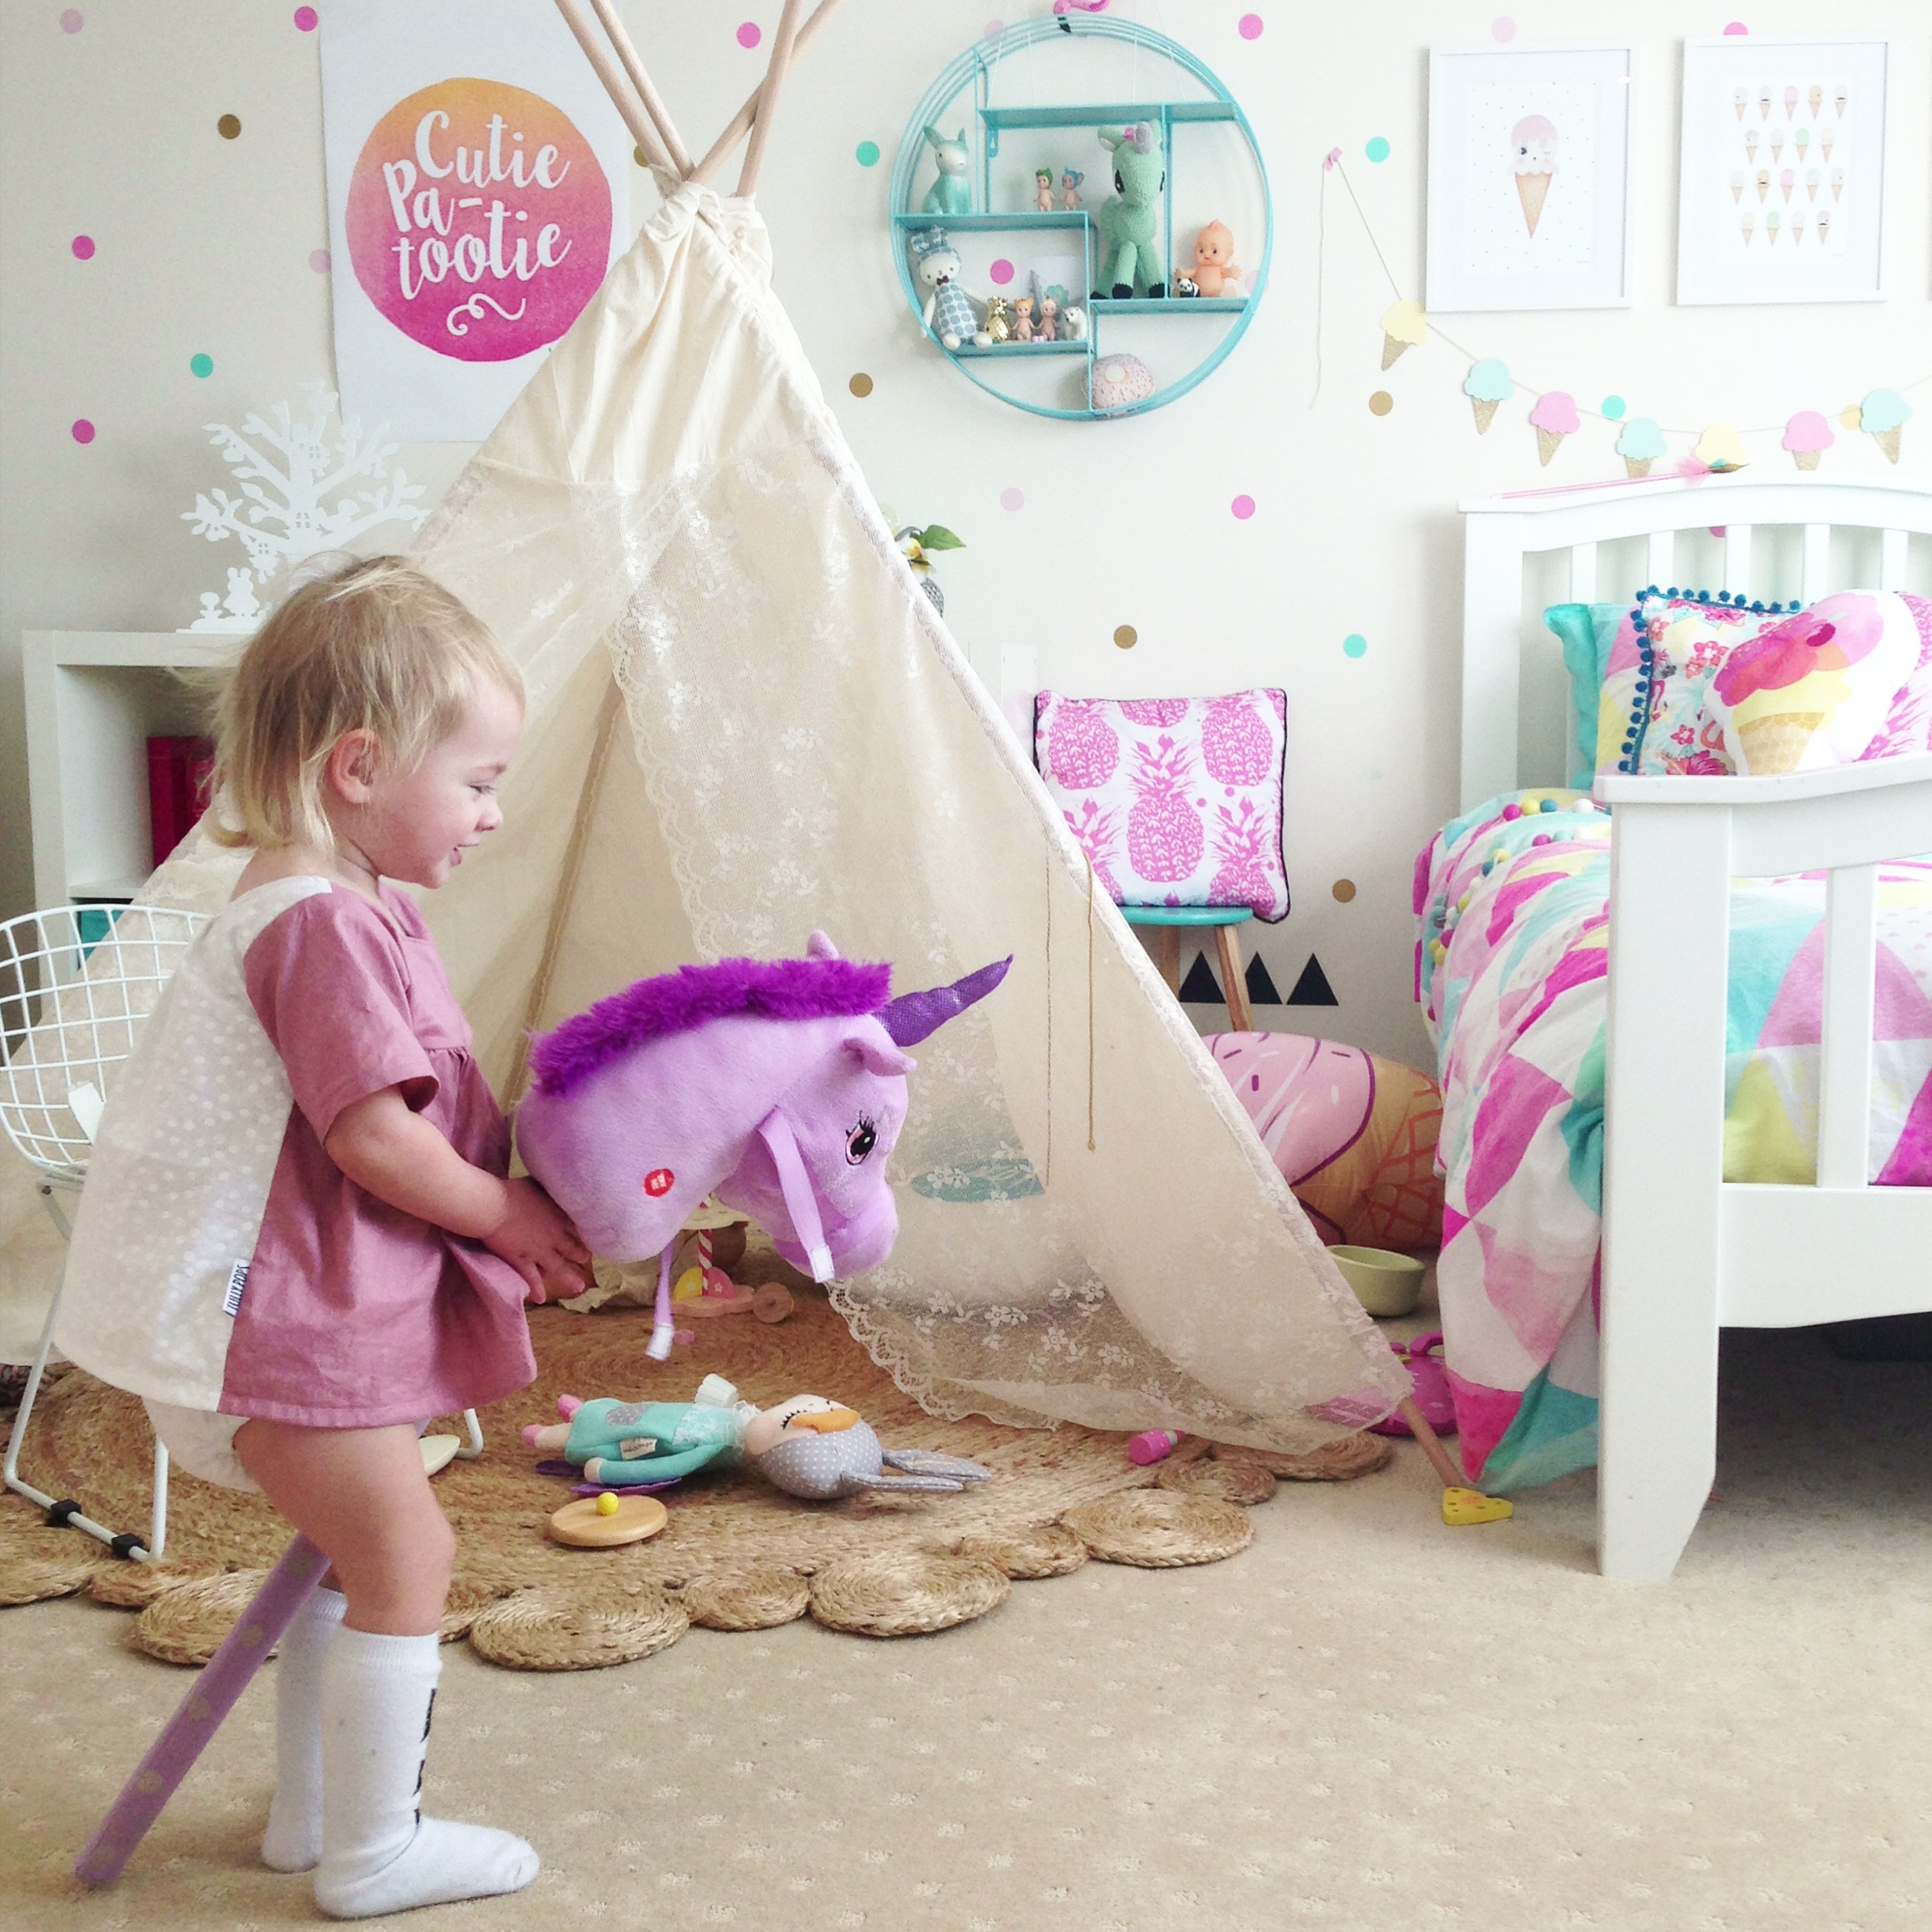 Kids Fashion and Interiors by Four Cheeky Monkeys